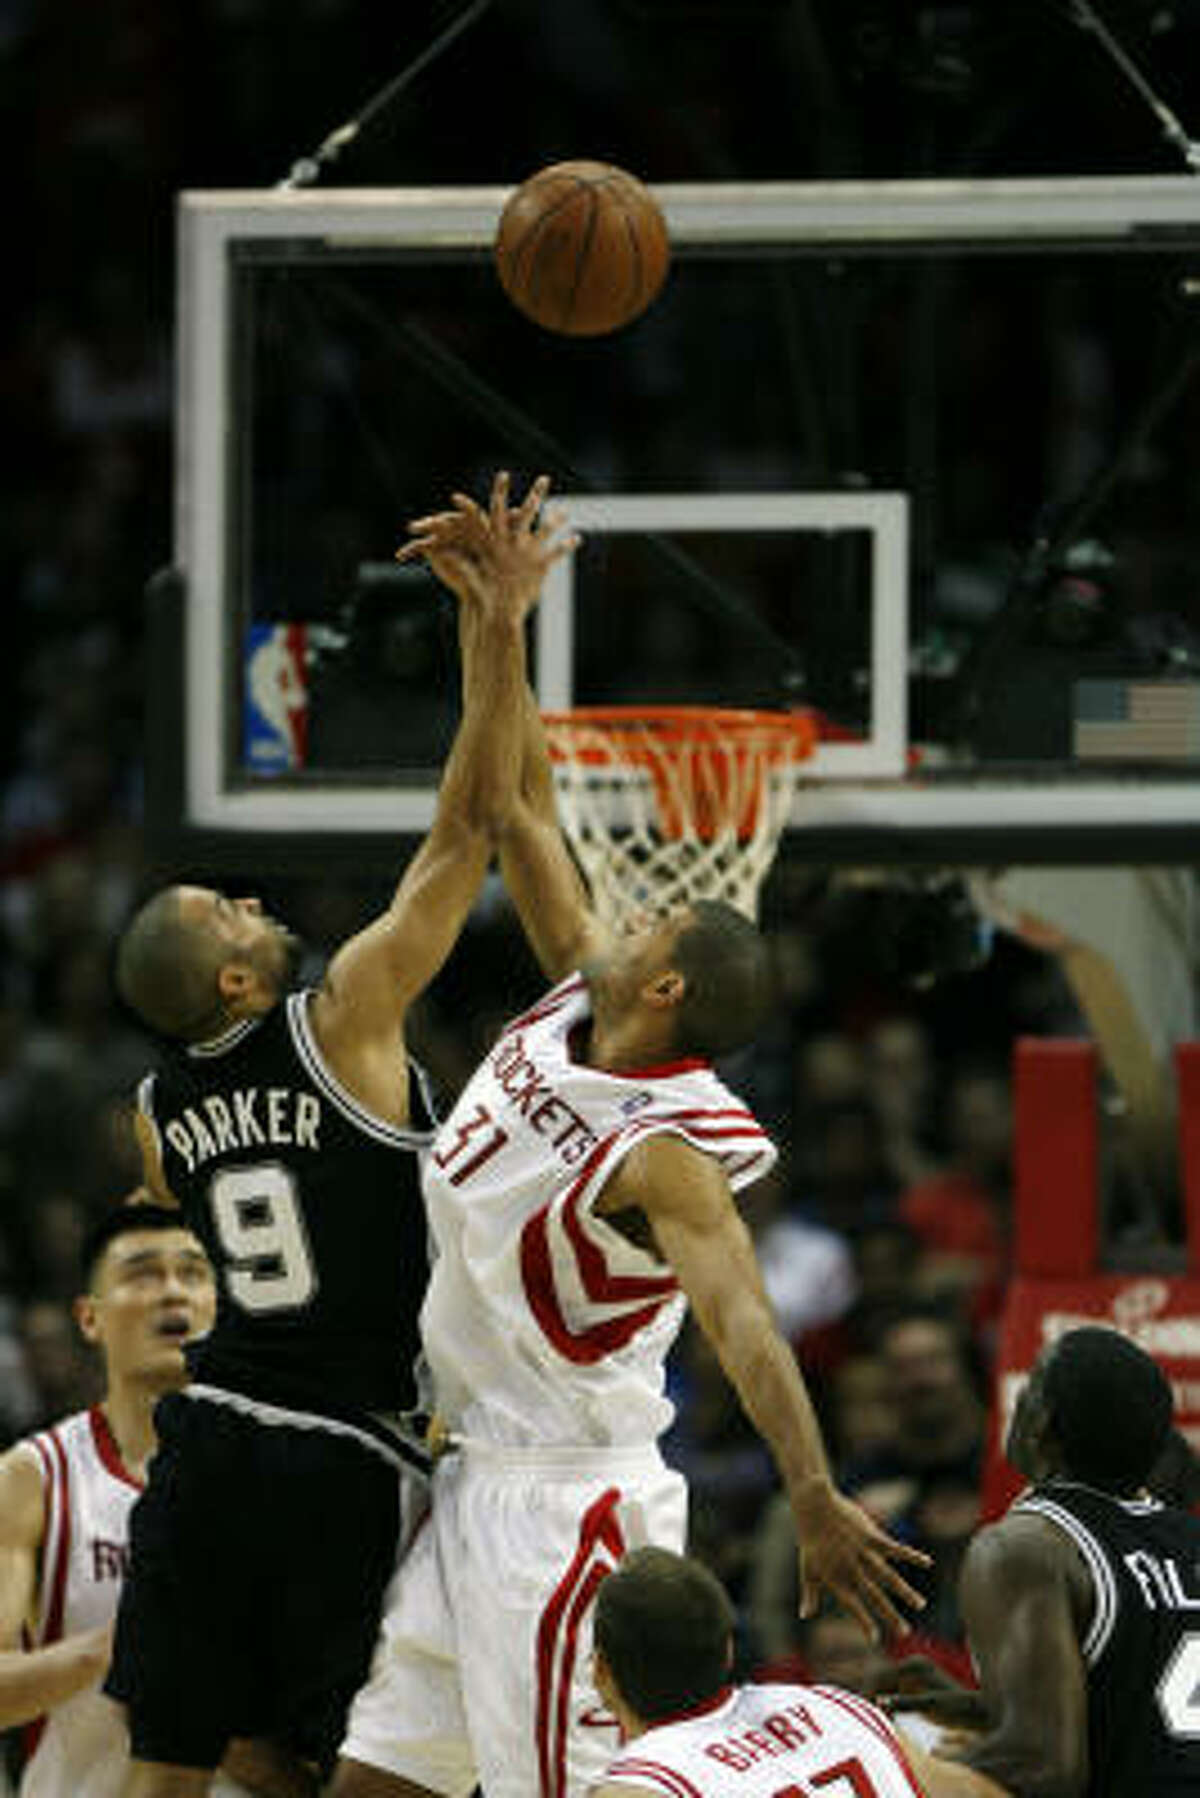 Another shot of Spurs guard Tony Parker (9) Shane Battier on a jumpball late in the fourth quarter.